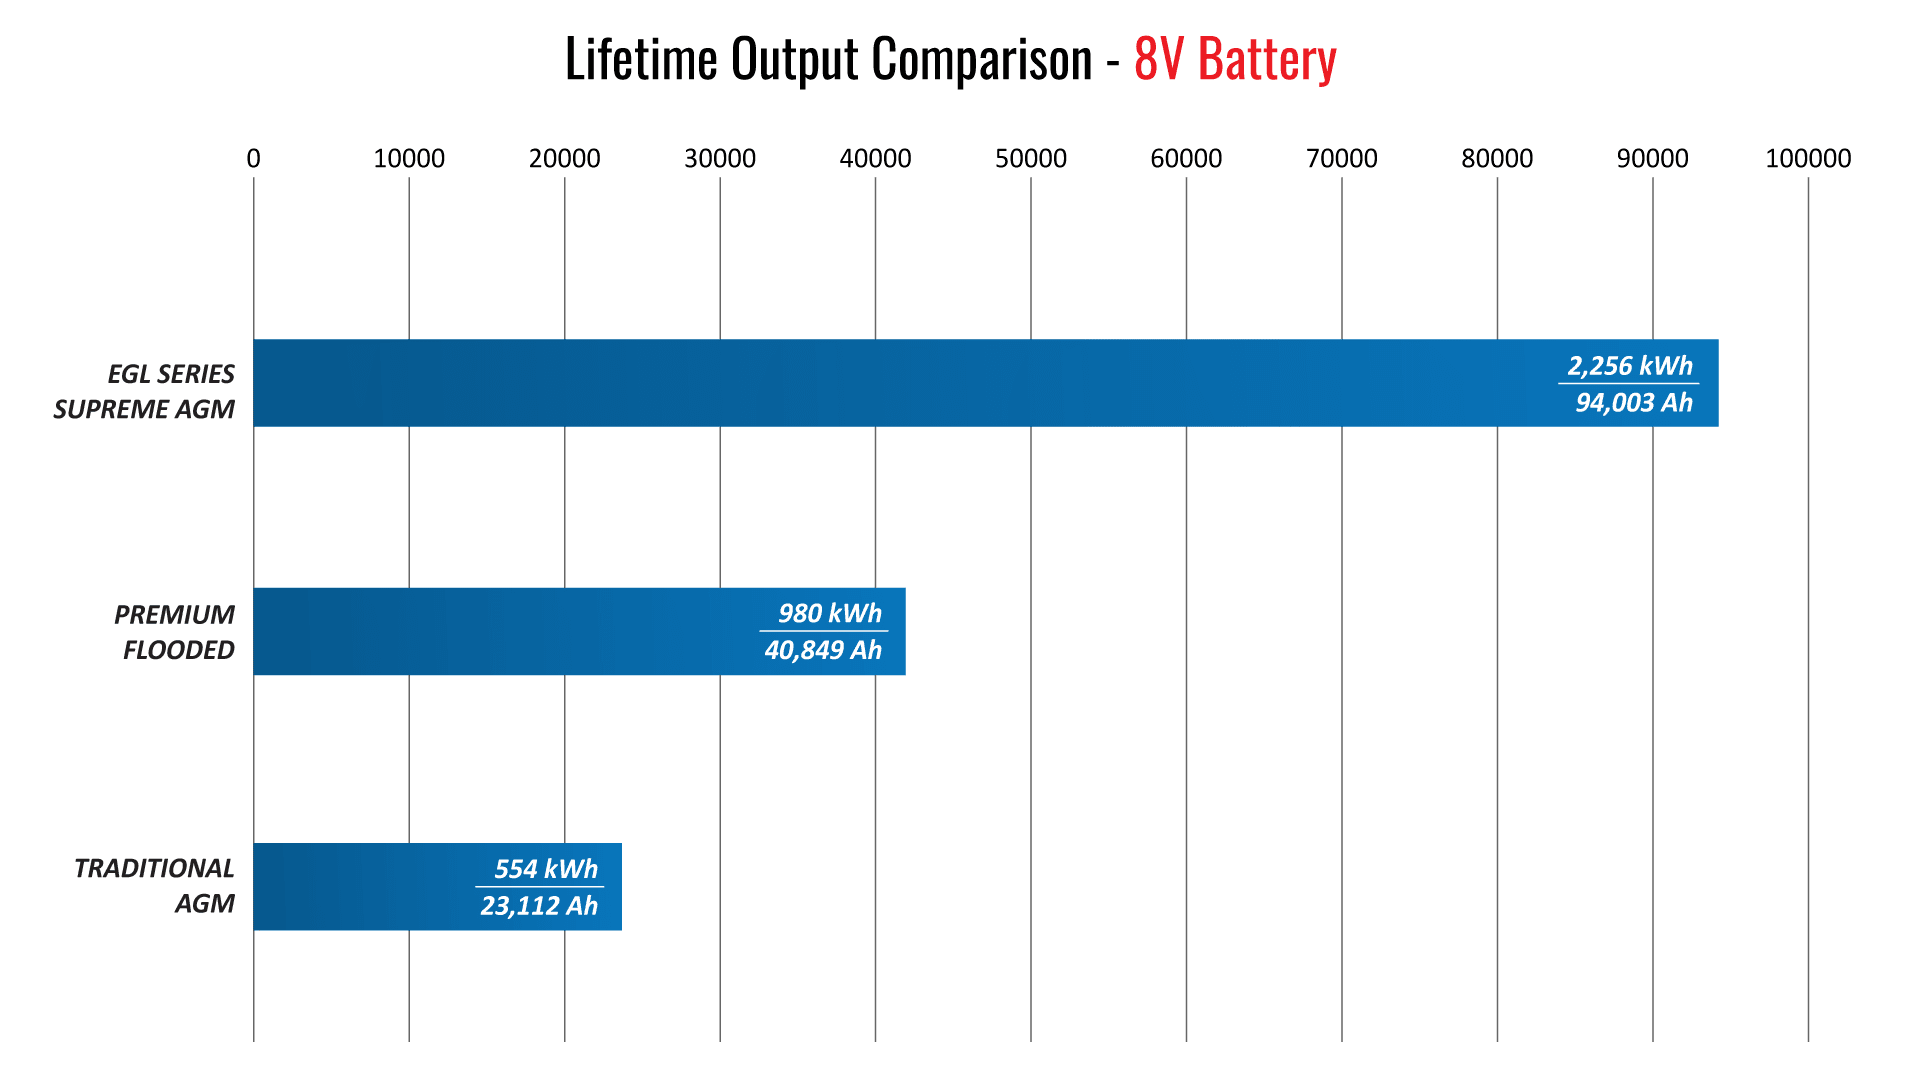 EGL Series Lifetime Output Comparison Graph